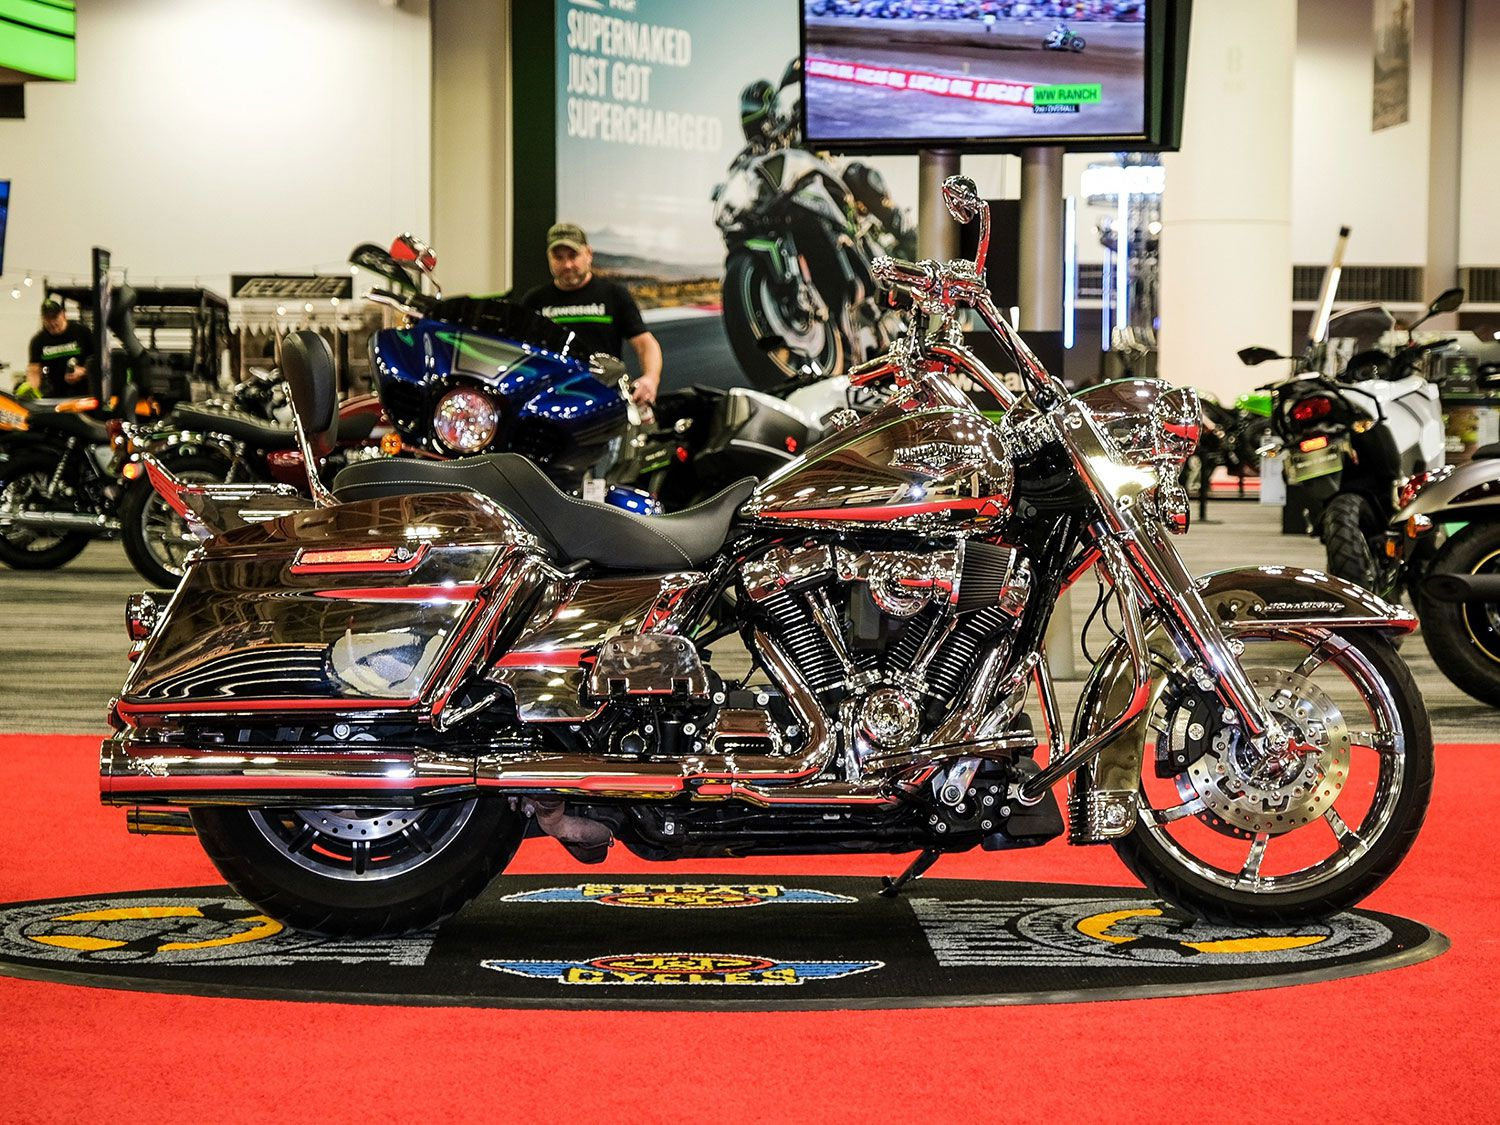 IMS attendees voted Barry Zelickson's 2017 Harley Road King as the People's Choice winner with its unique mix of chrome and skulls.